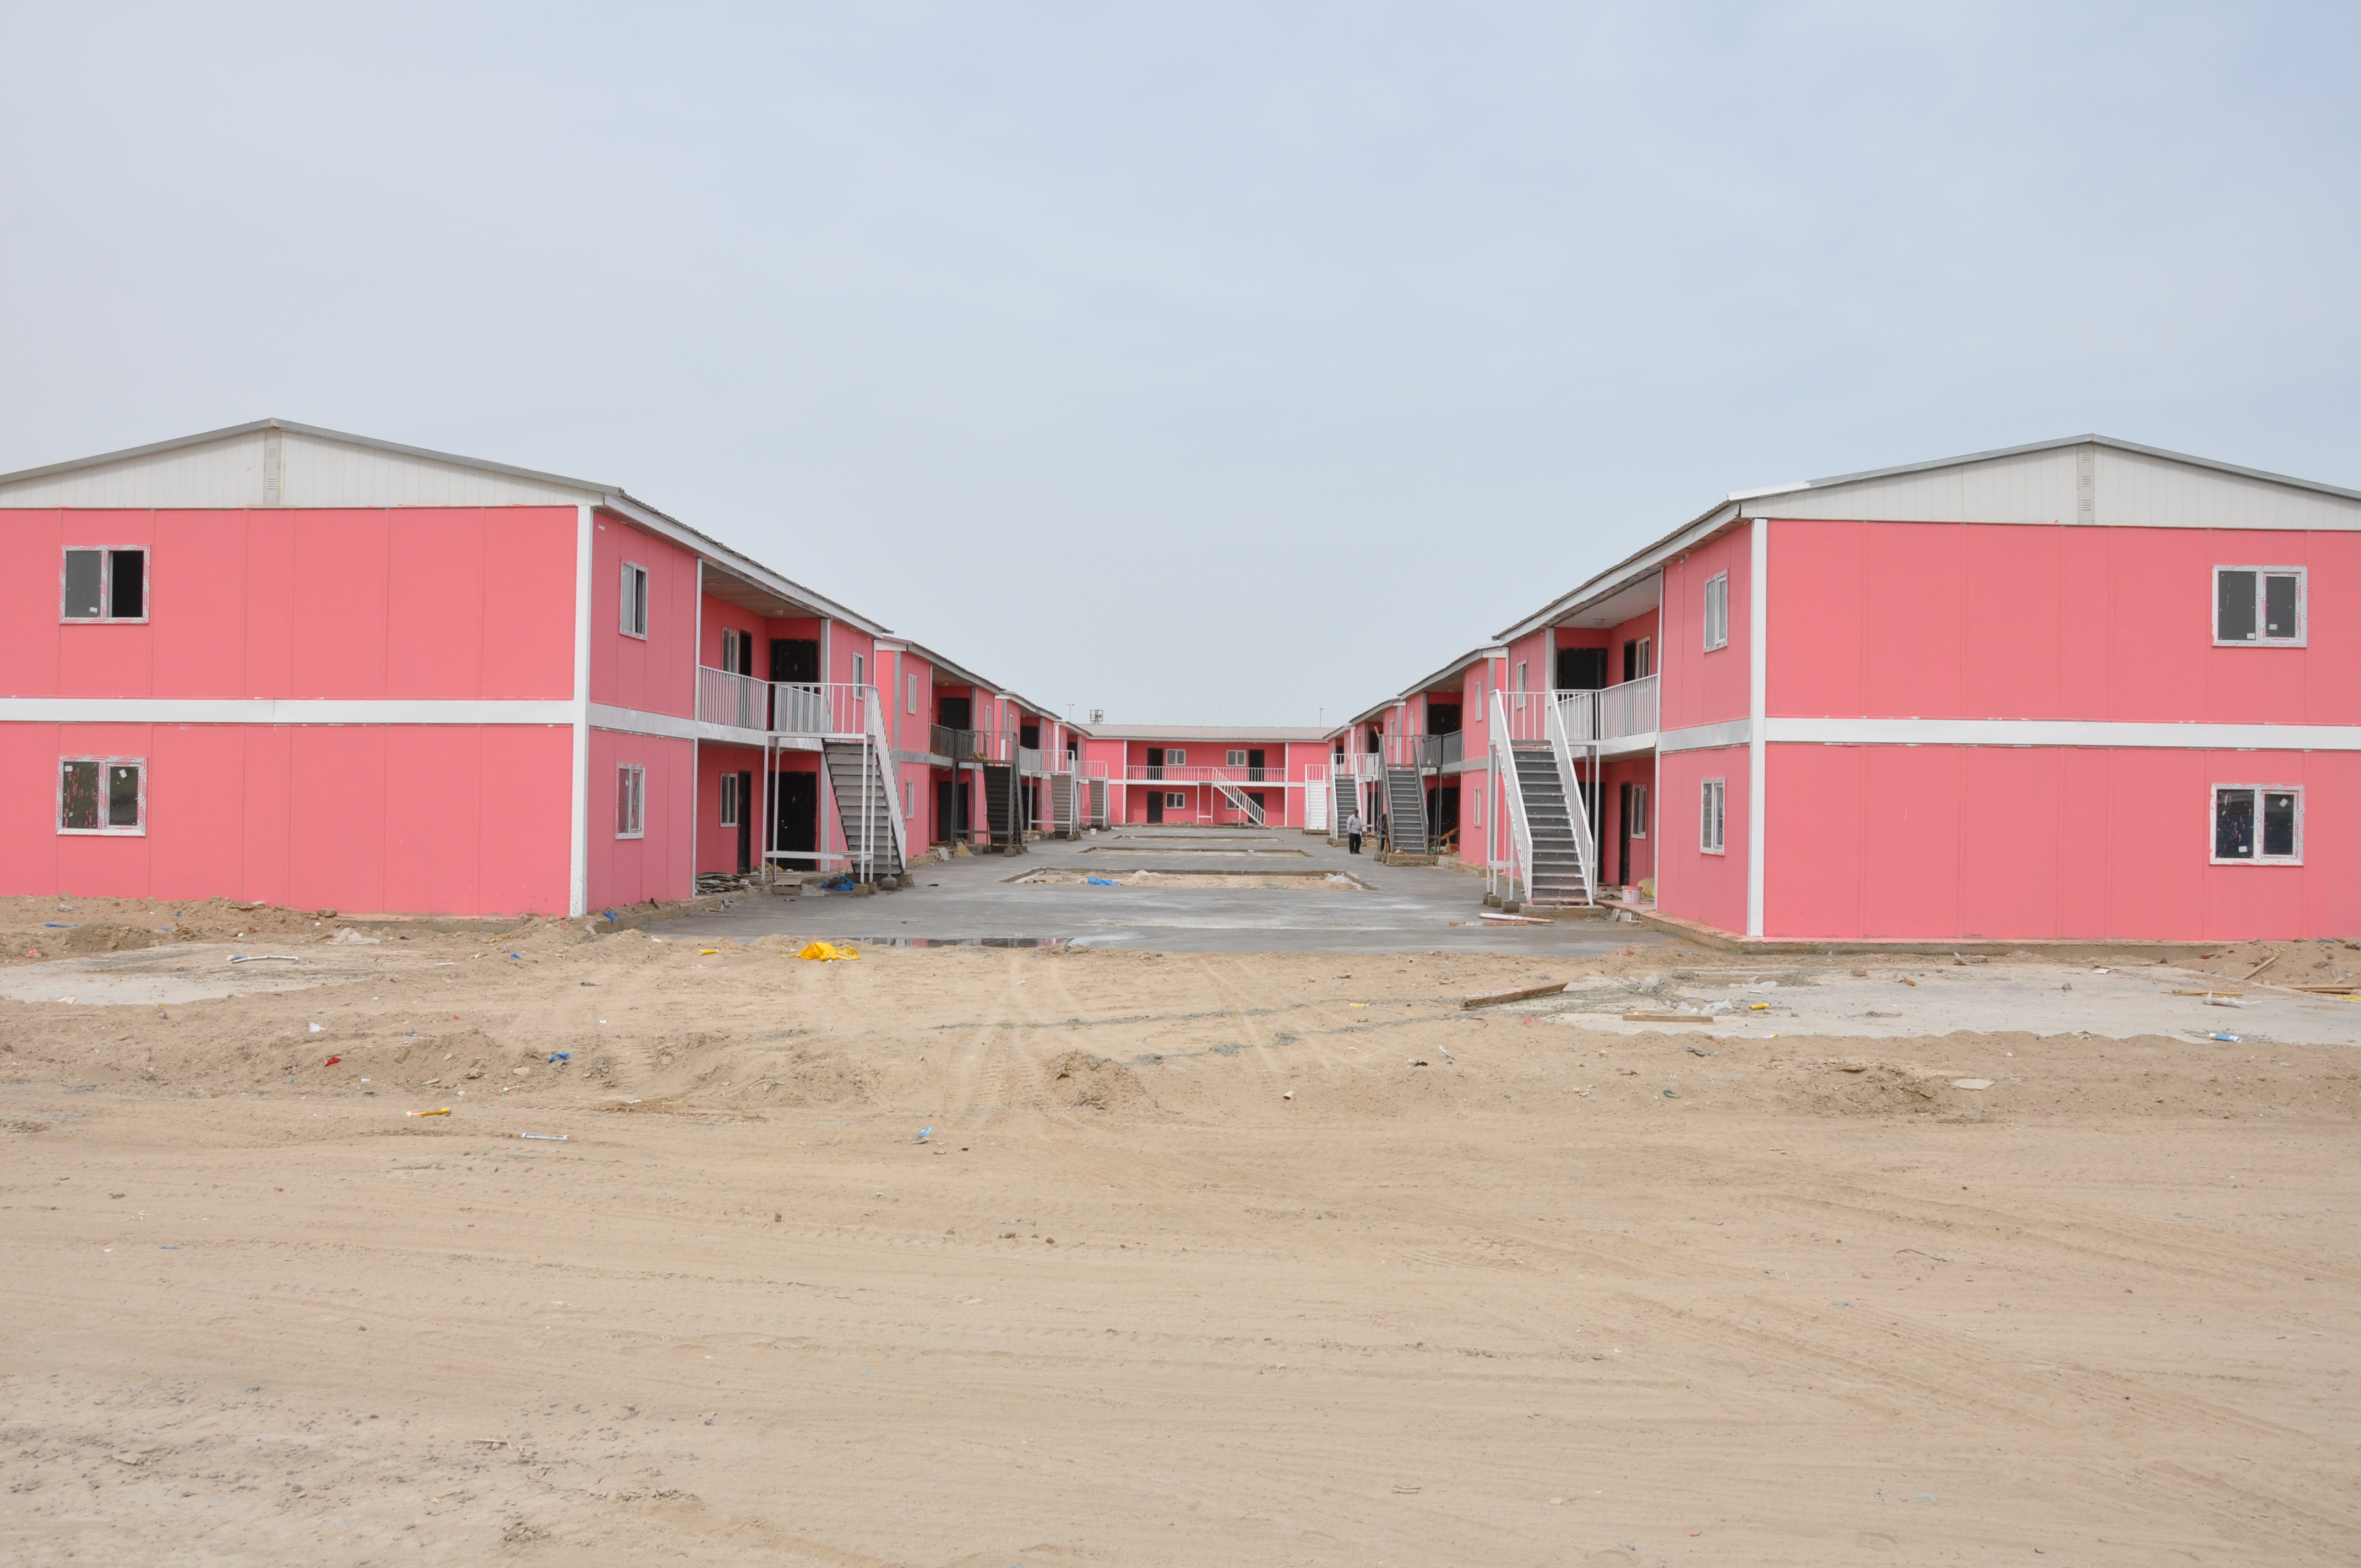 prefabricated modular structures